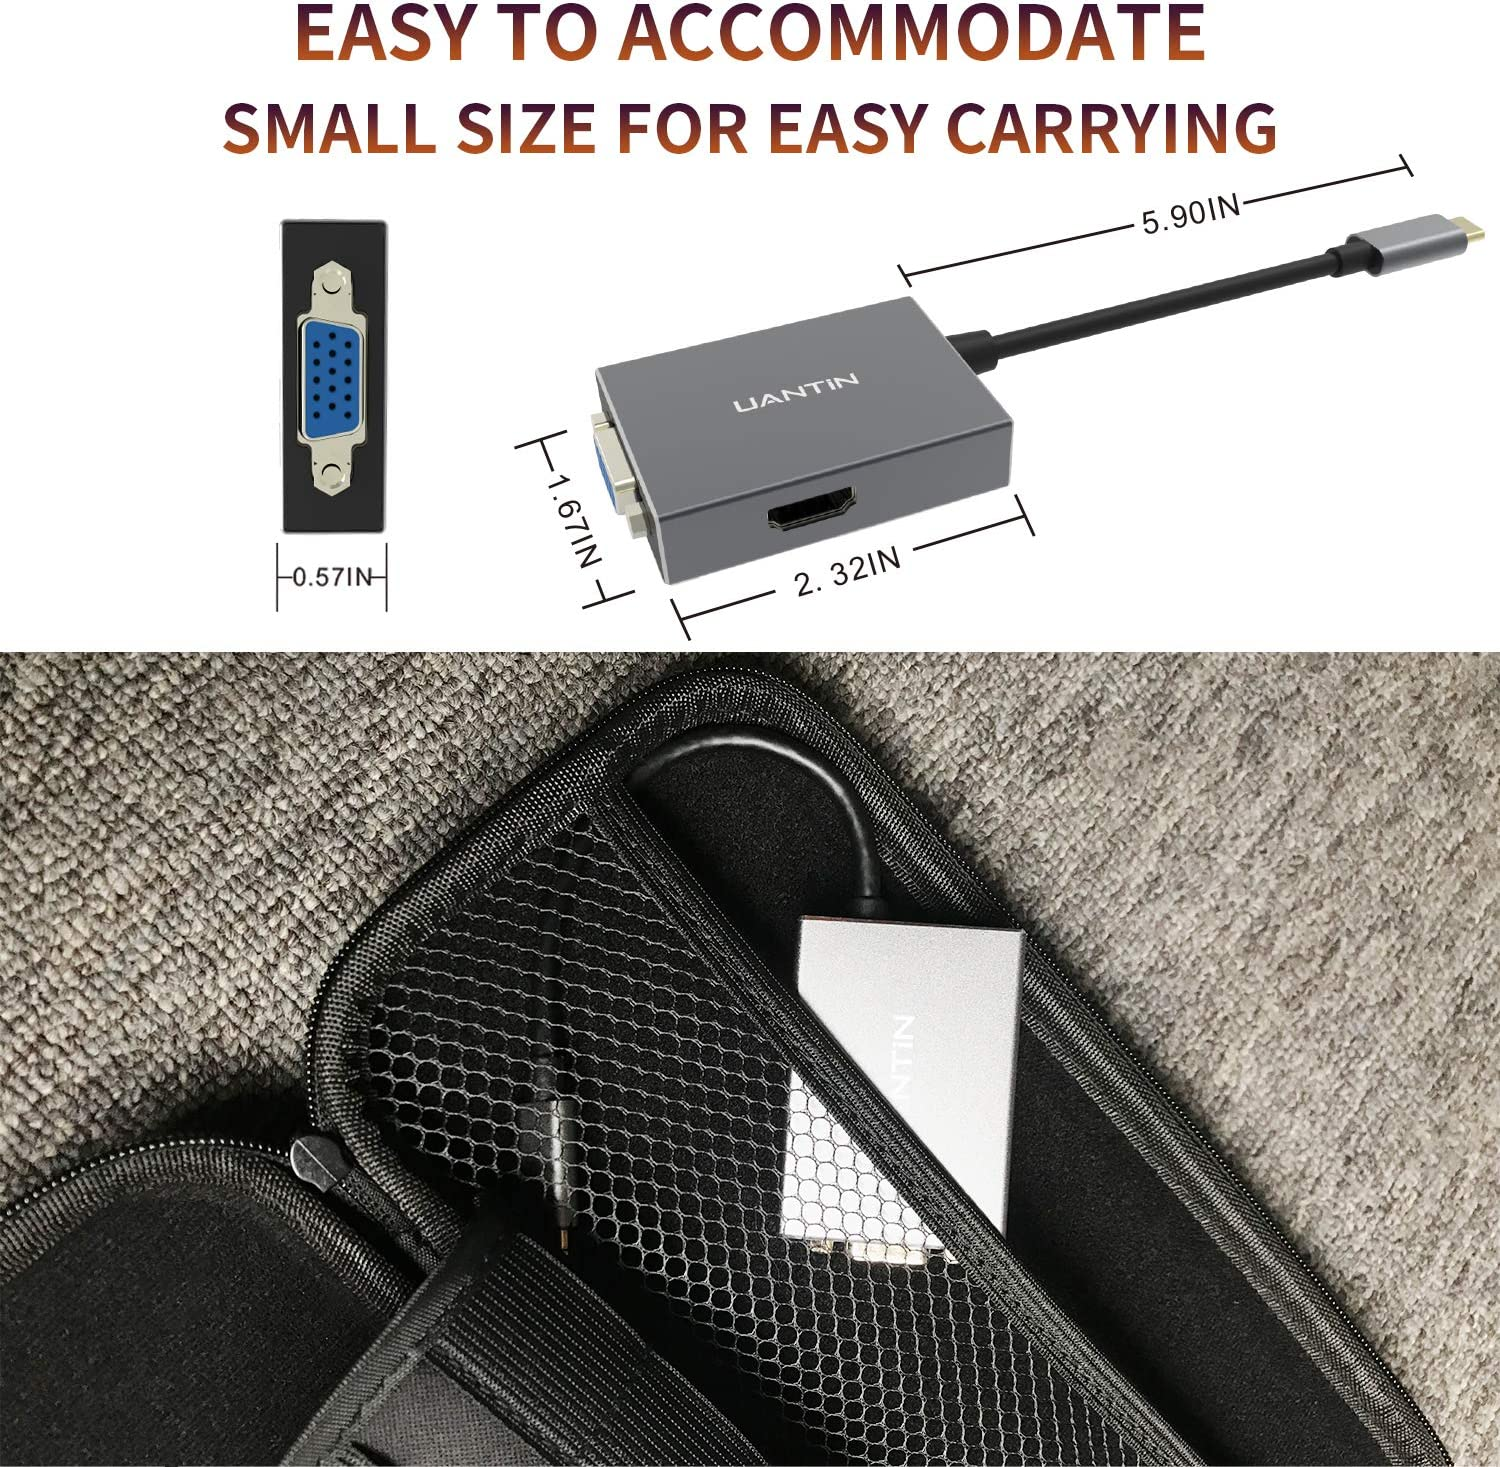 for MacBook//Pro//Air//iMac//iPad Pro and Other Type C Laptops or Devices USB 3.0 Port VGA Port USB C Hub 3-in-1 USB C Adapter with 4K USB C to HDMI